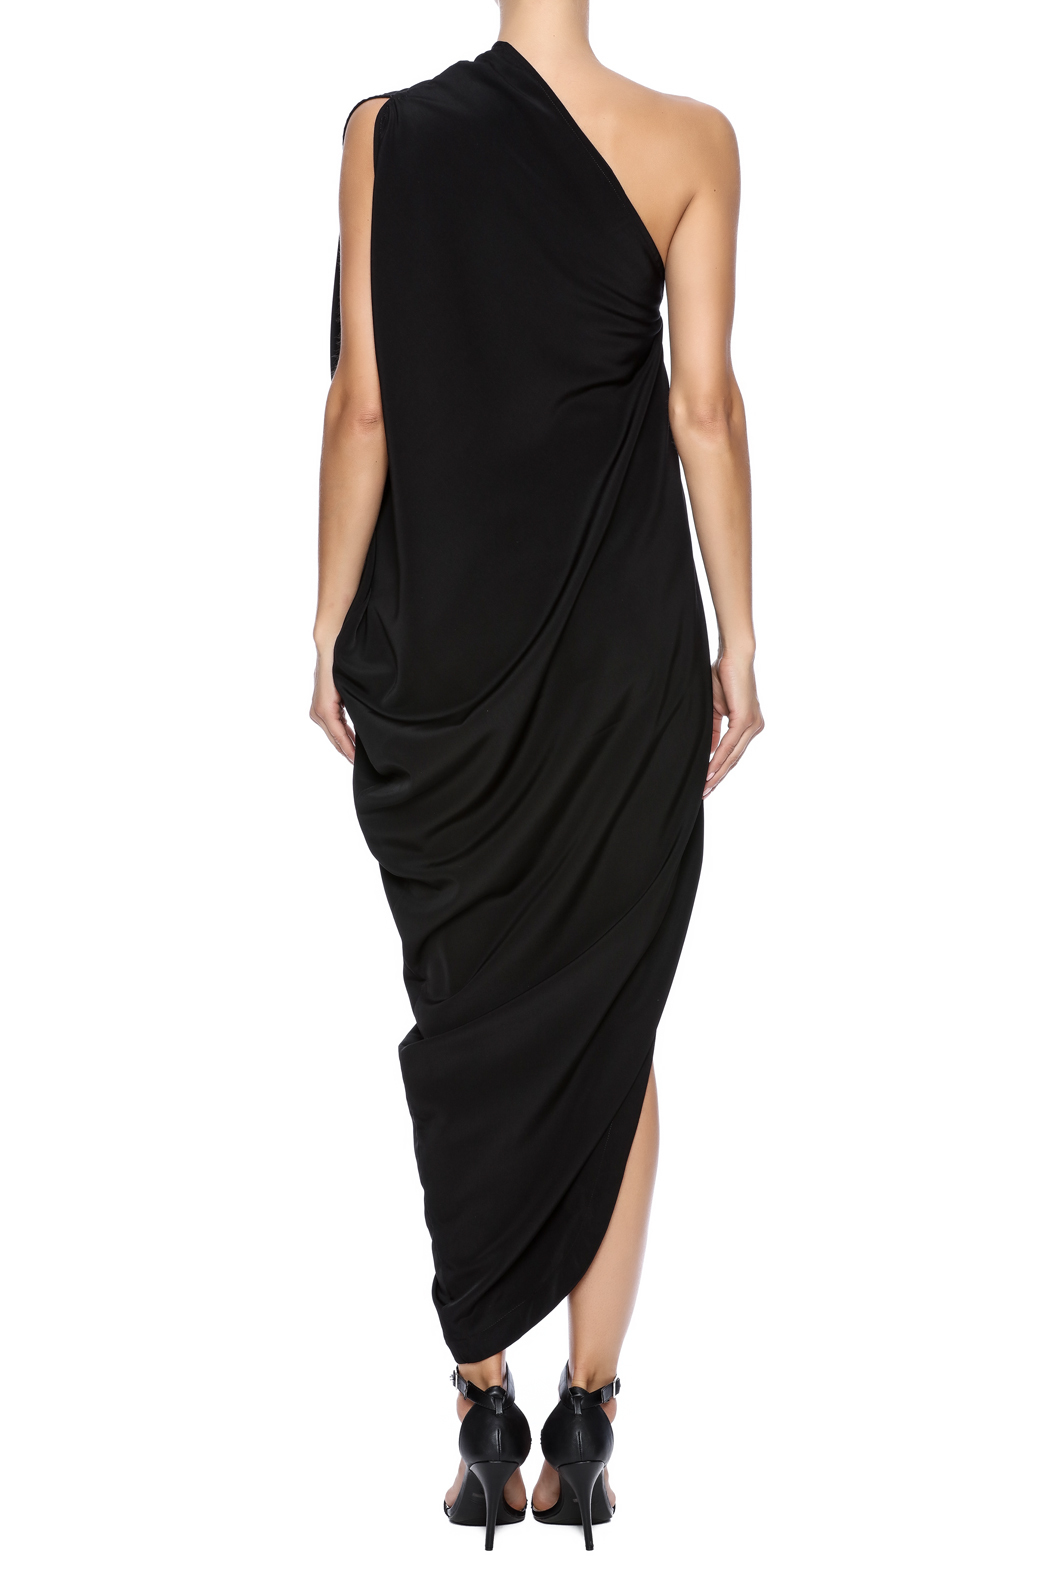 NINObrand Asymmetric One Shoulder Dress - Back Cropped Image